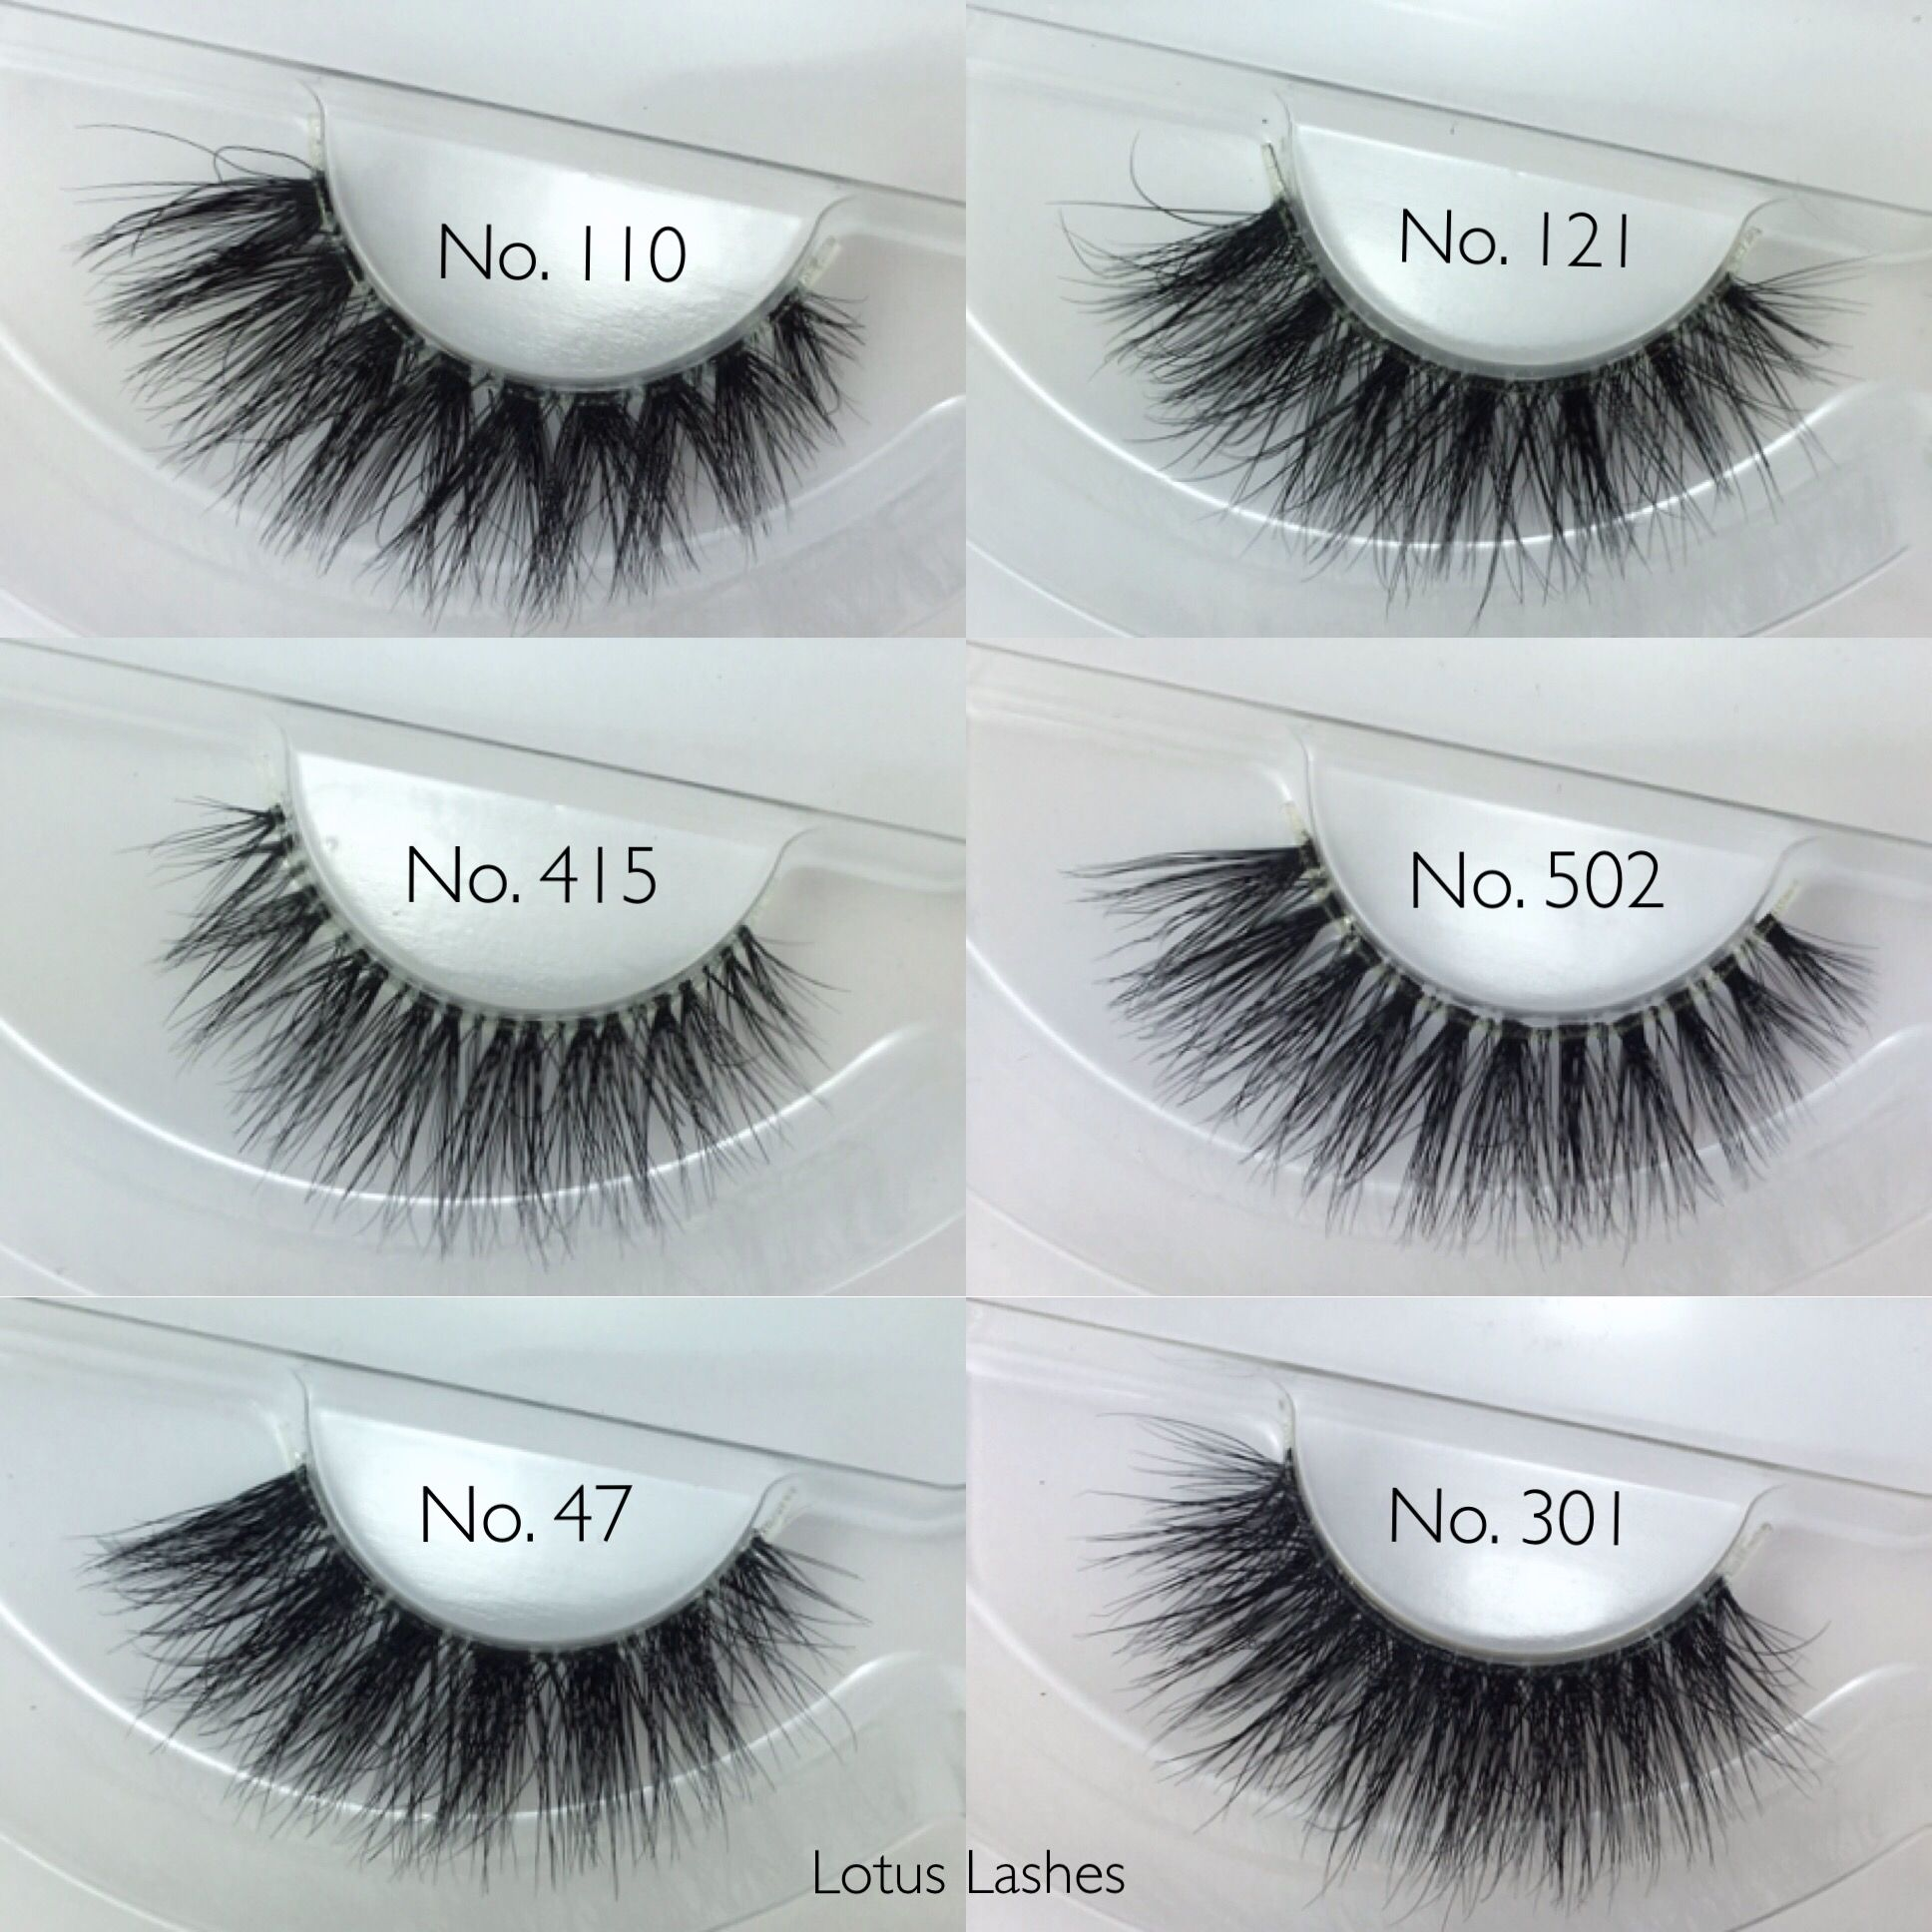 cf6fc7a3aa7 {Crystal Collection} 3D mink lashes with a soft/flexible clear band for  indescribable comfort and the most natural look possible. #bandless  #LotusLashes